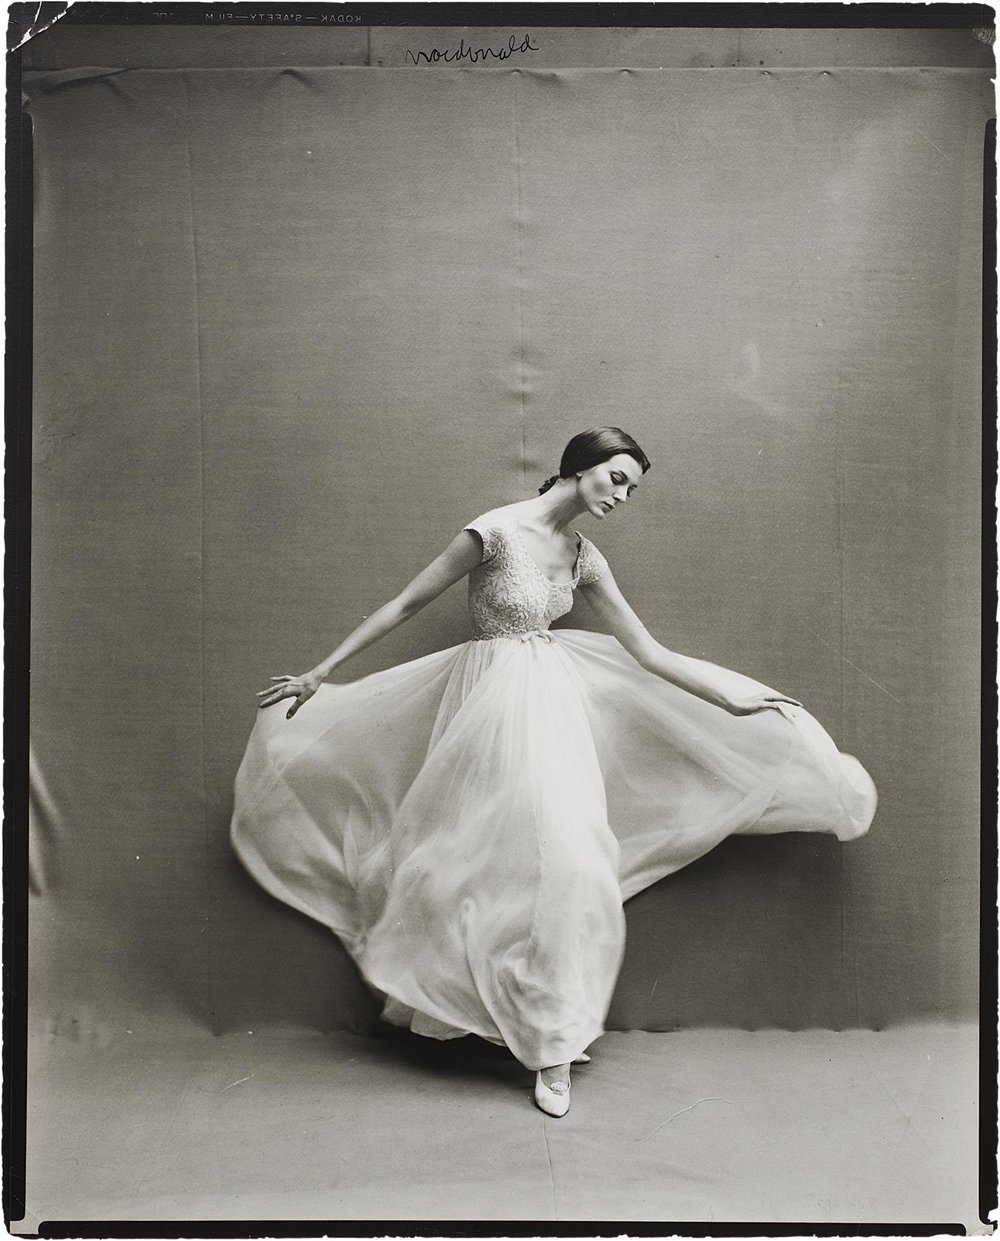 Carmen Dell'Orefice by Richard Avedon for Harper's Bazaar, October 1957